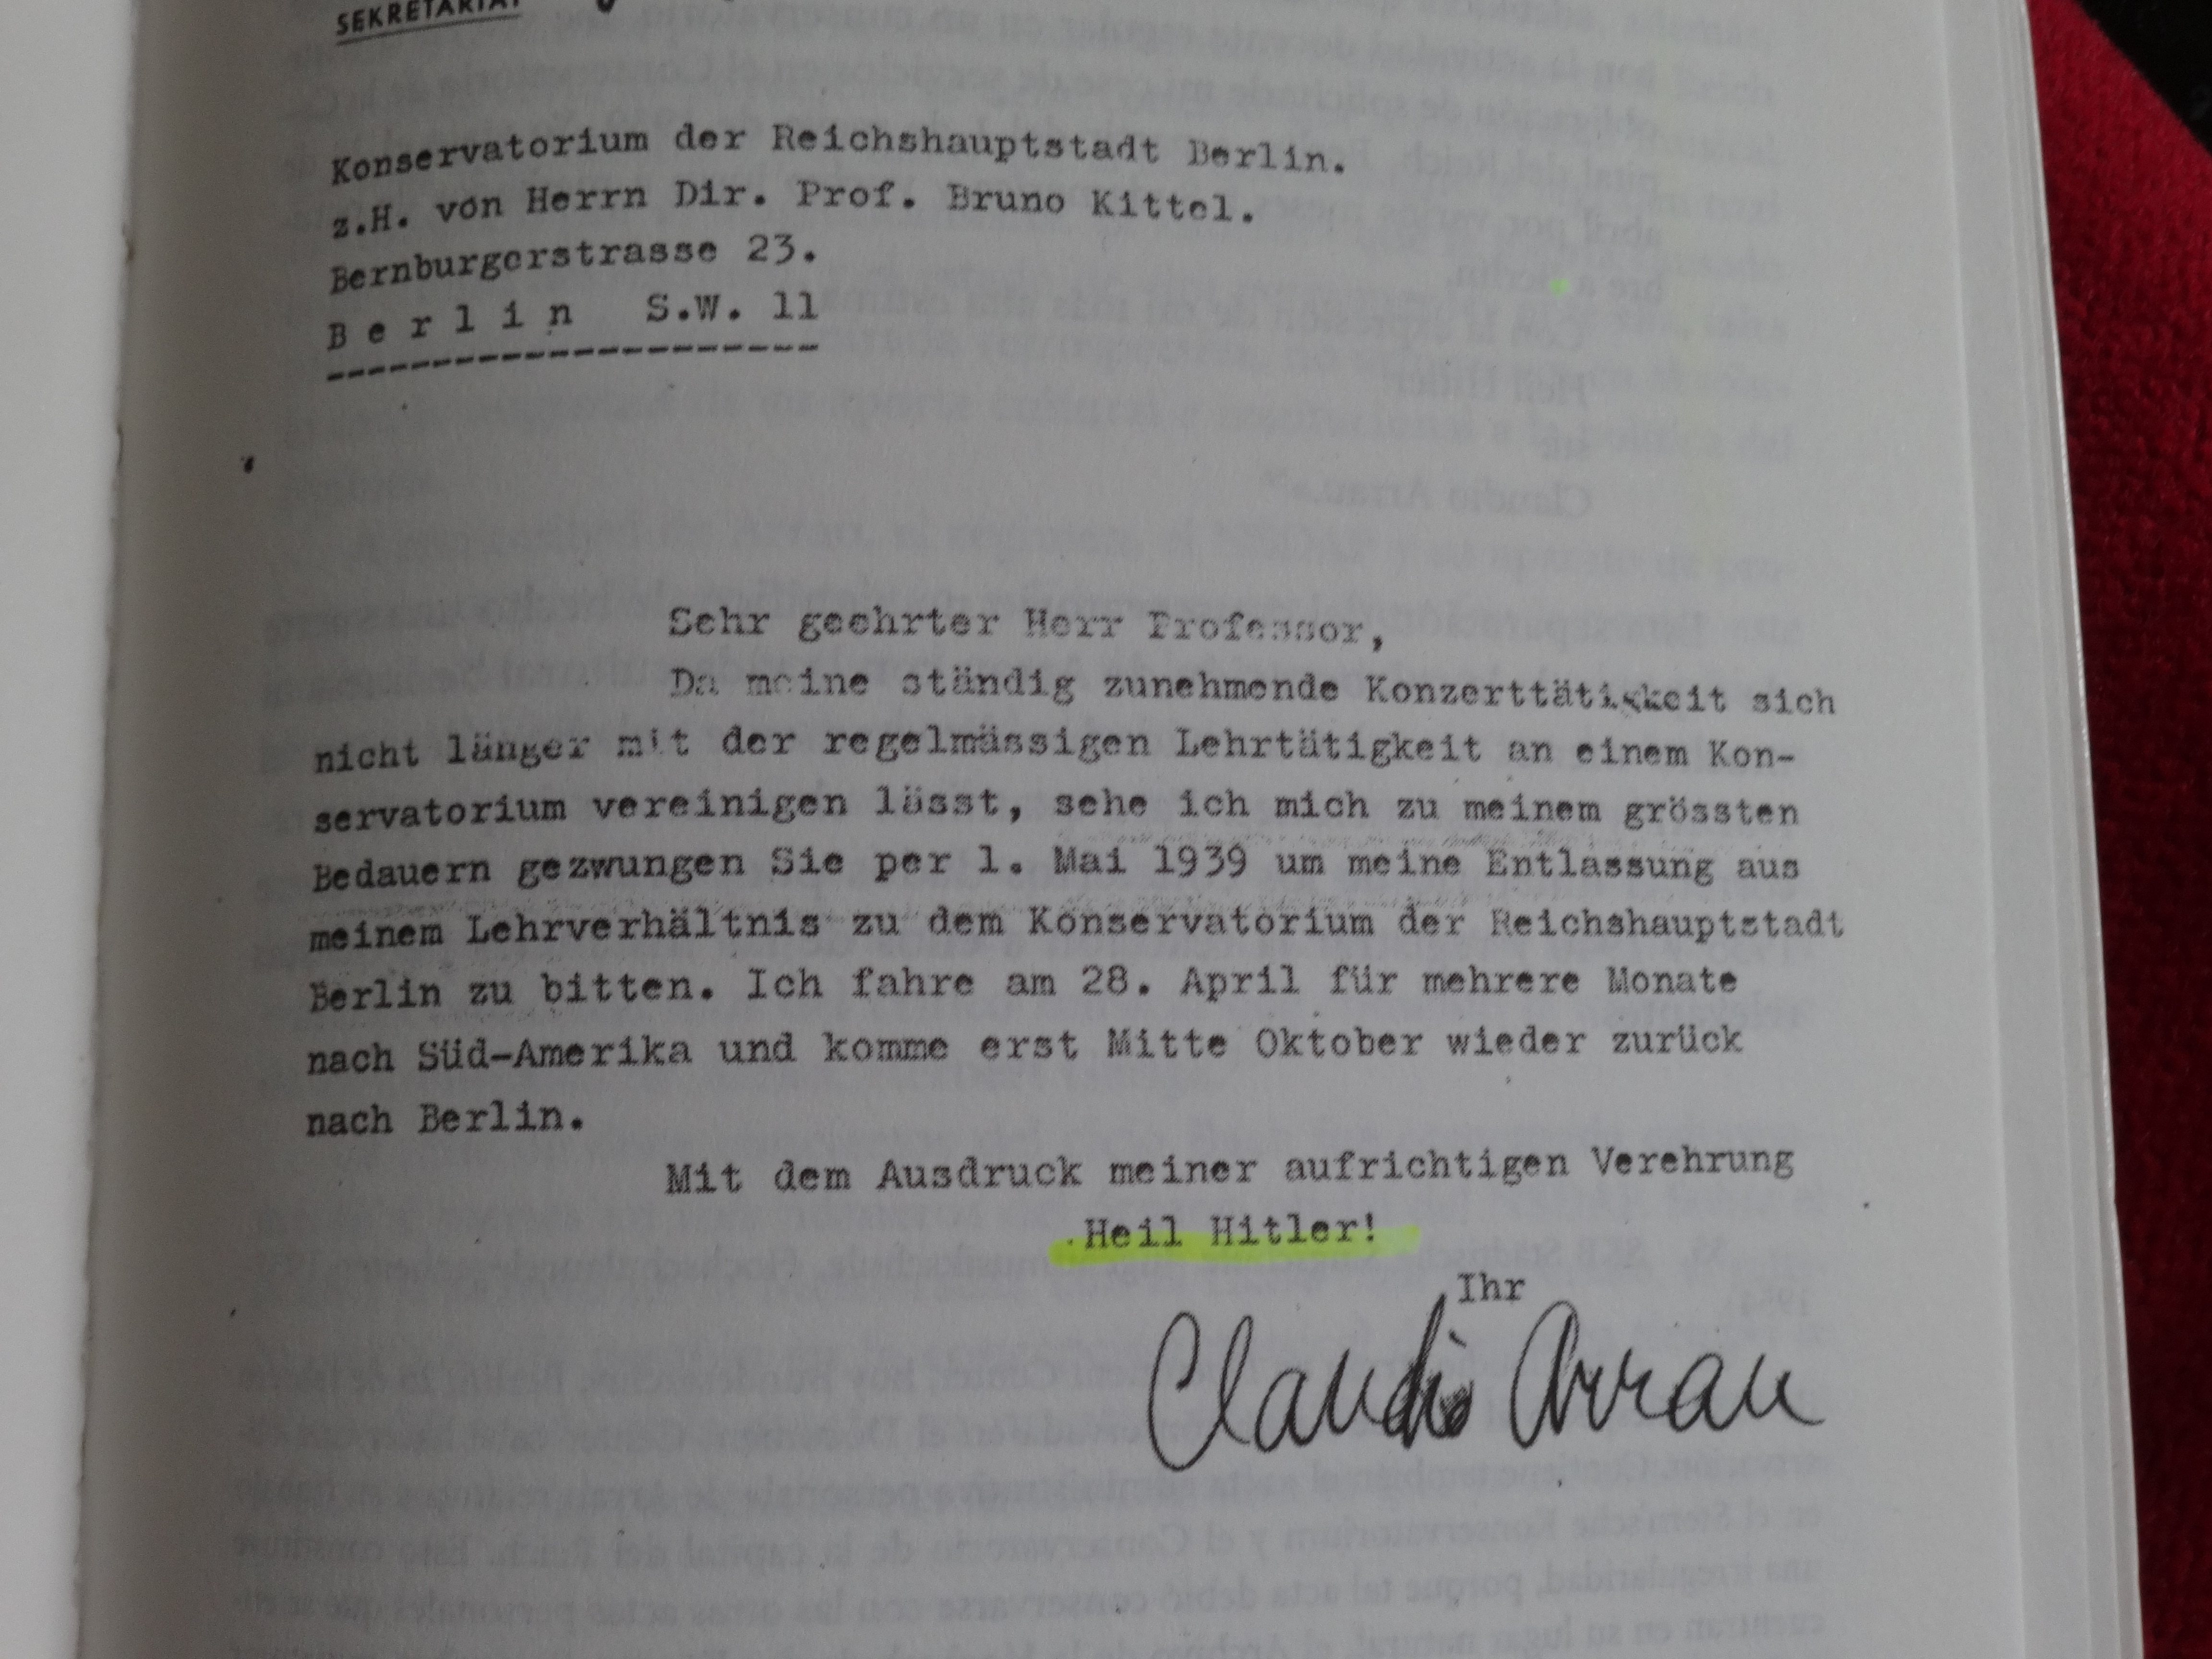 In 1939, Claudio Arrau signed off with 'Heil Hitler'